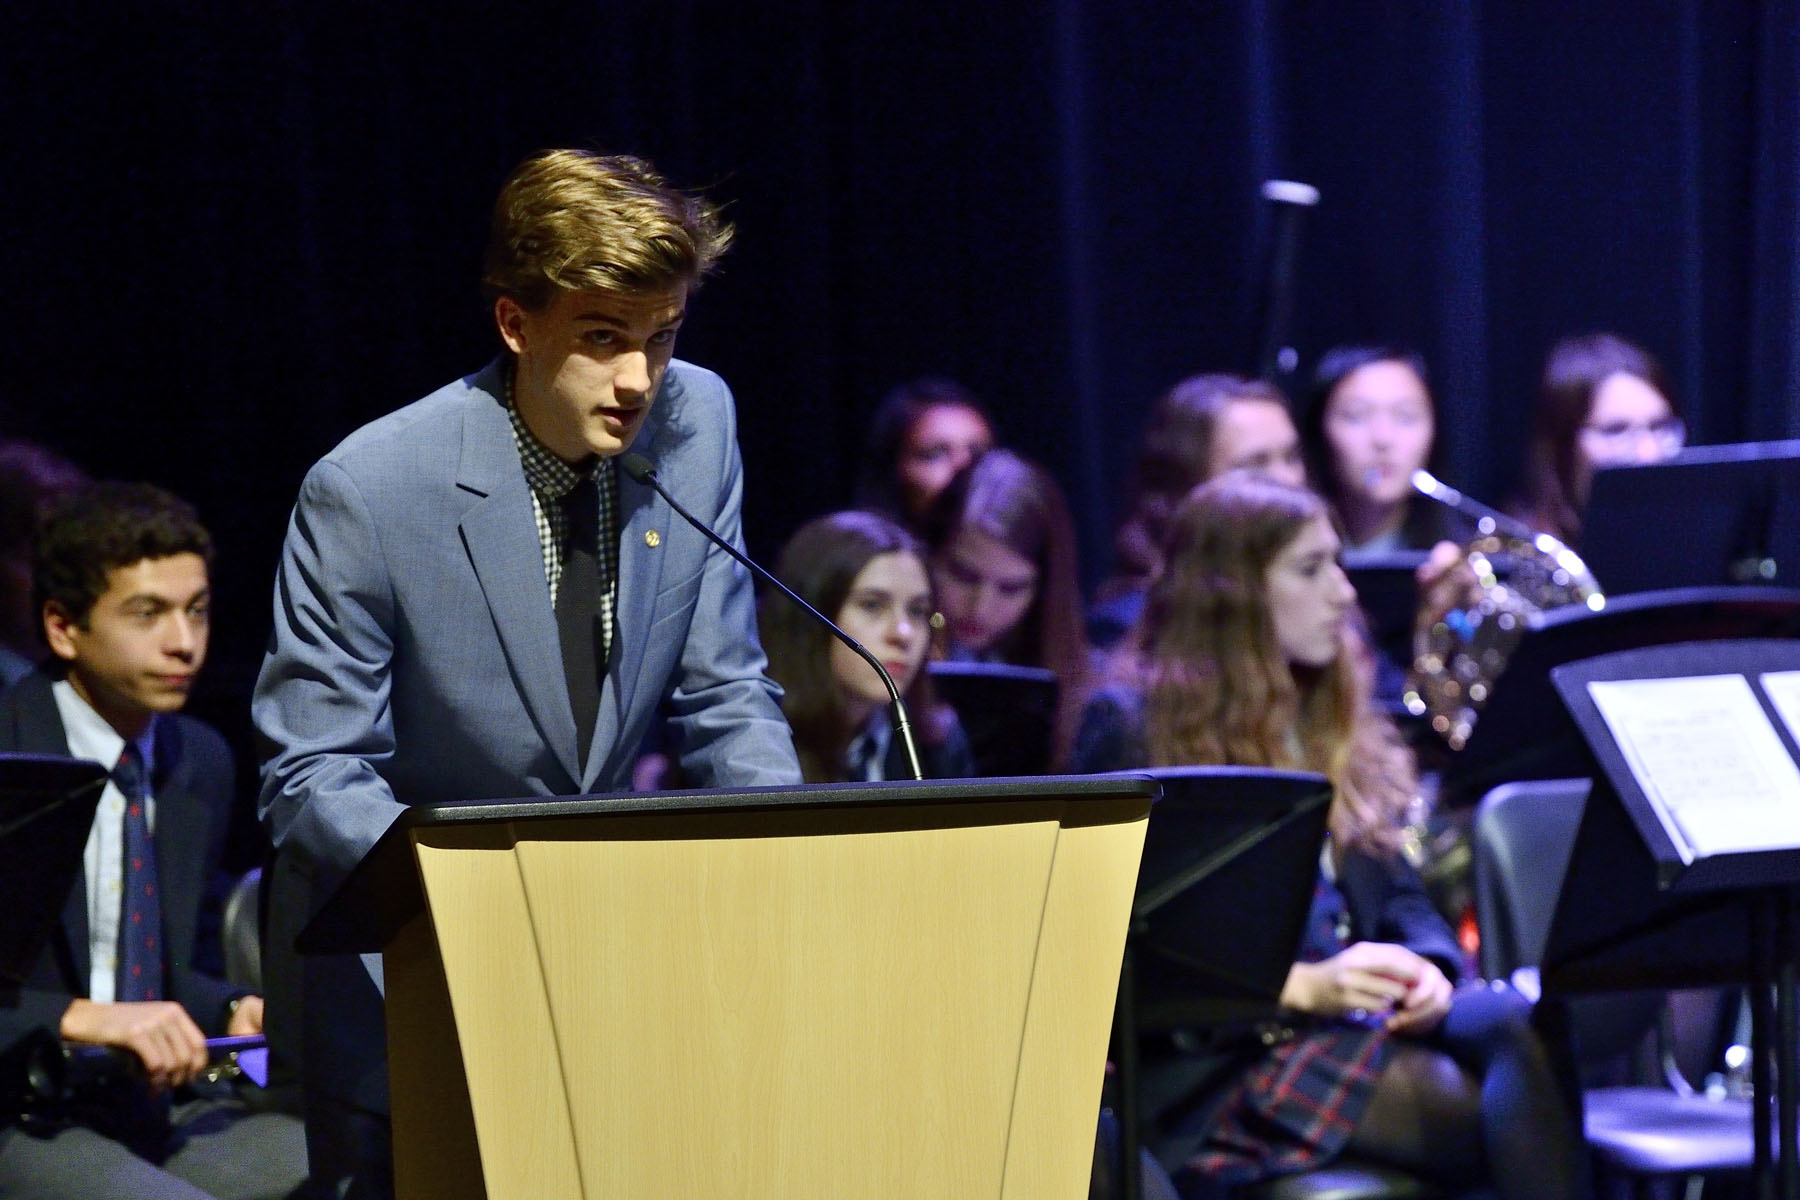 One of the recipients of The Duke of Edinburgh's Gold Award, shared his experience with the audience.